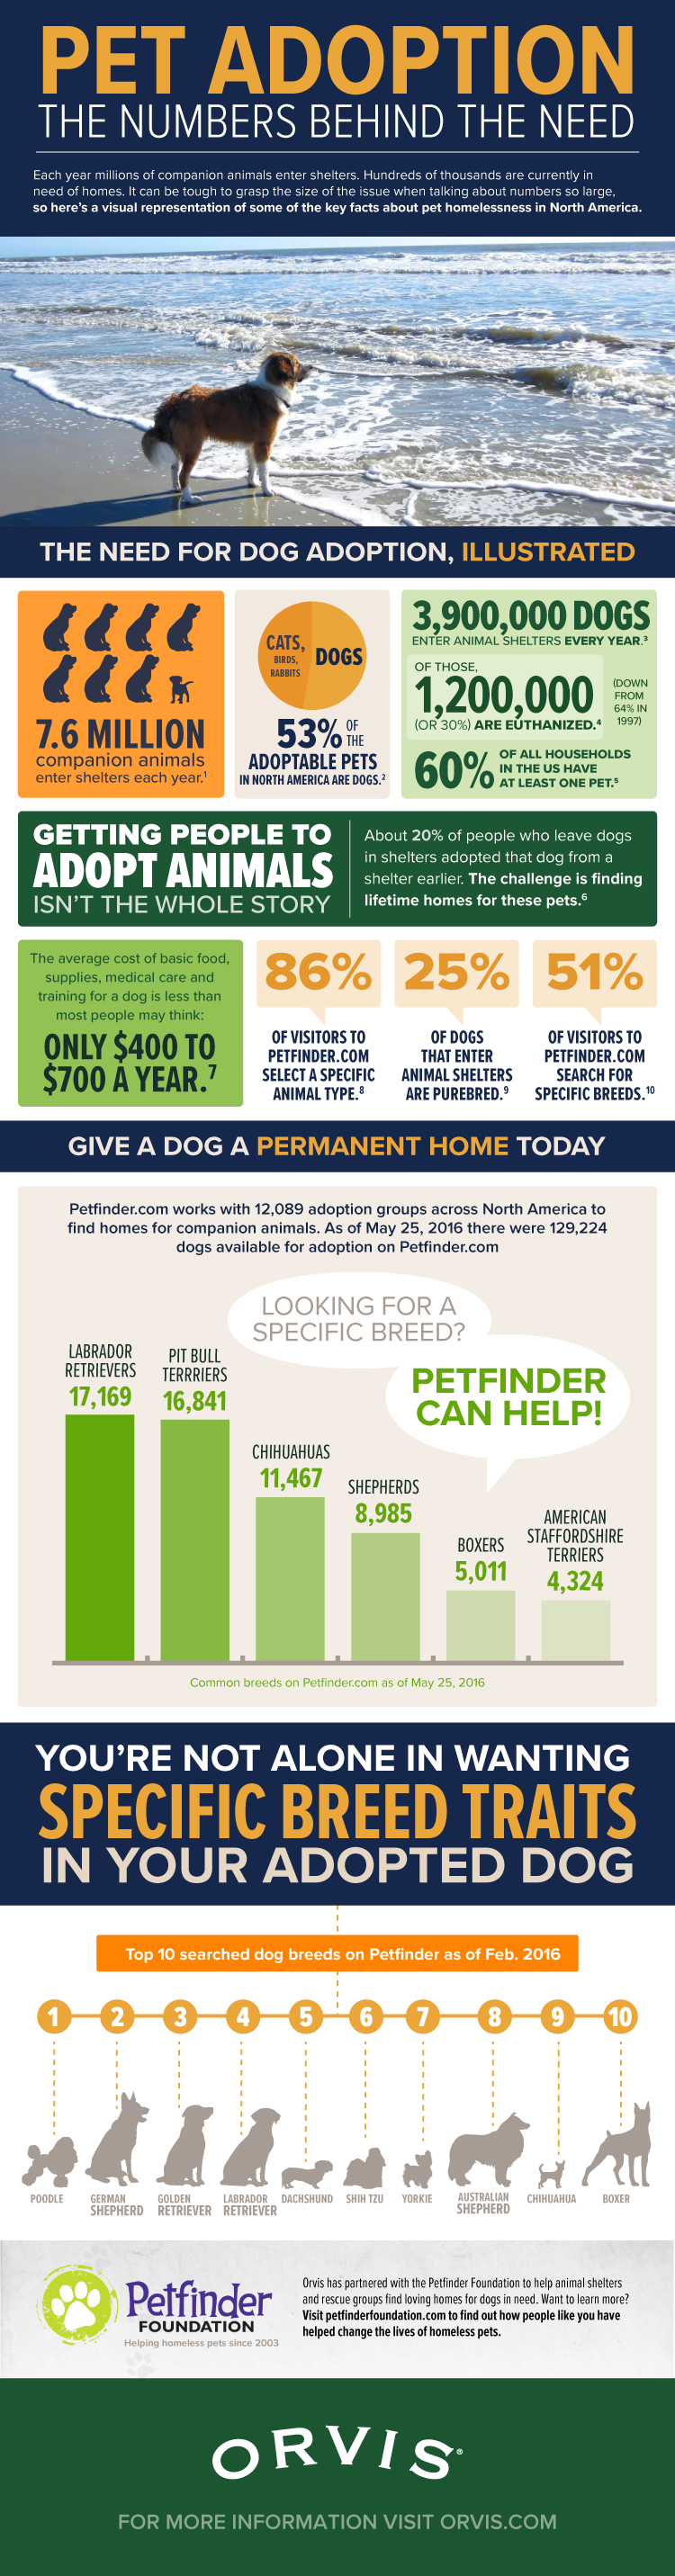 Pet Adoption: The Numbers Behind the Need [Infographic]